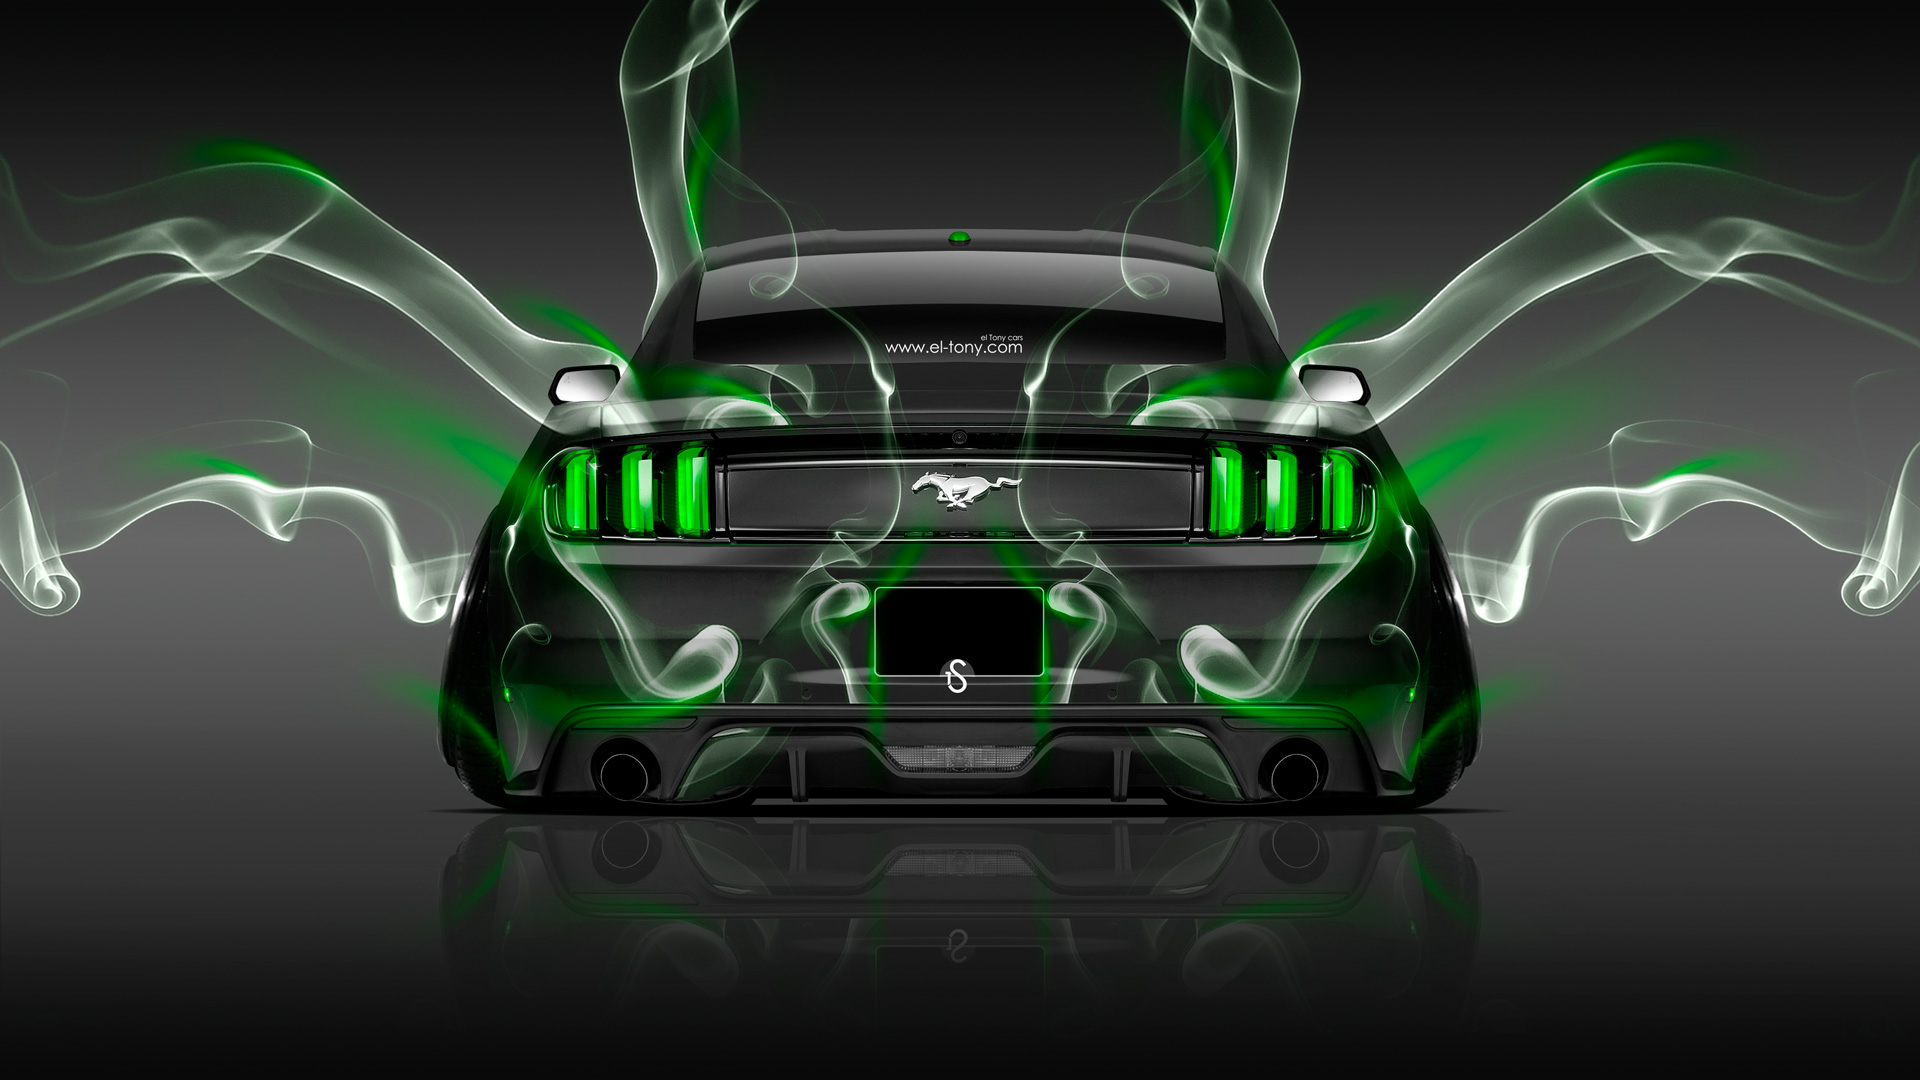 Ford Mustang Muscle Back Smoke Car 2014 Green Neon Hd Wallpapers